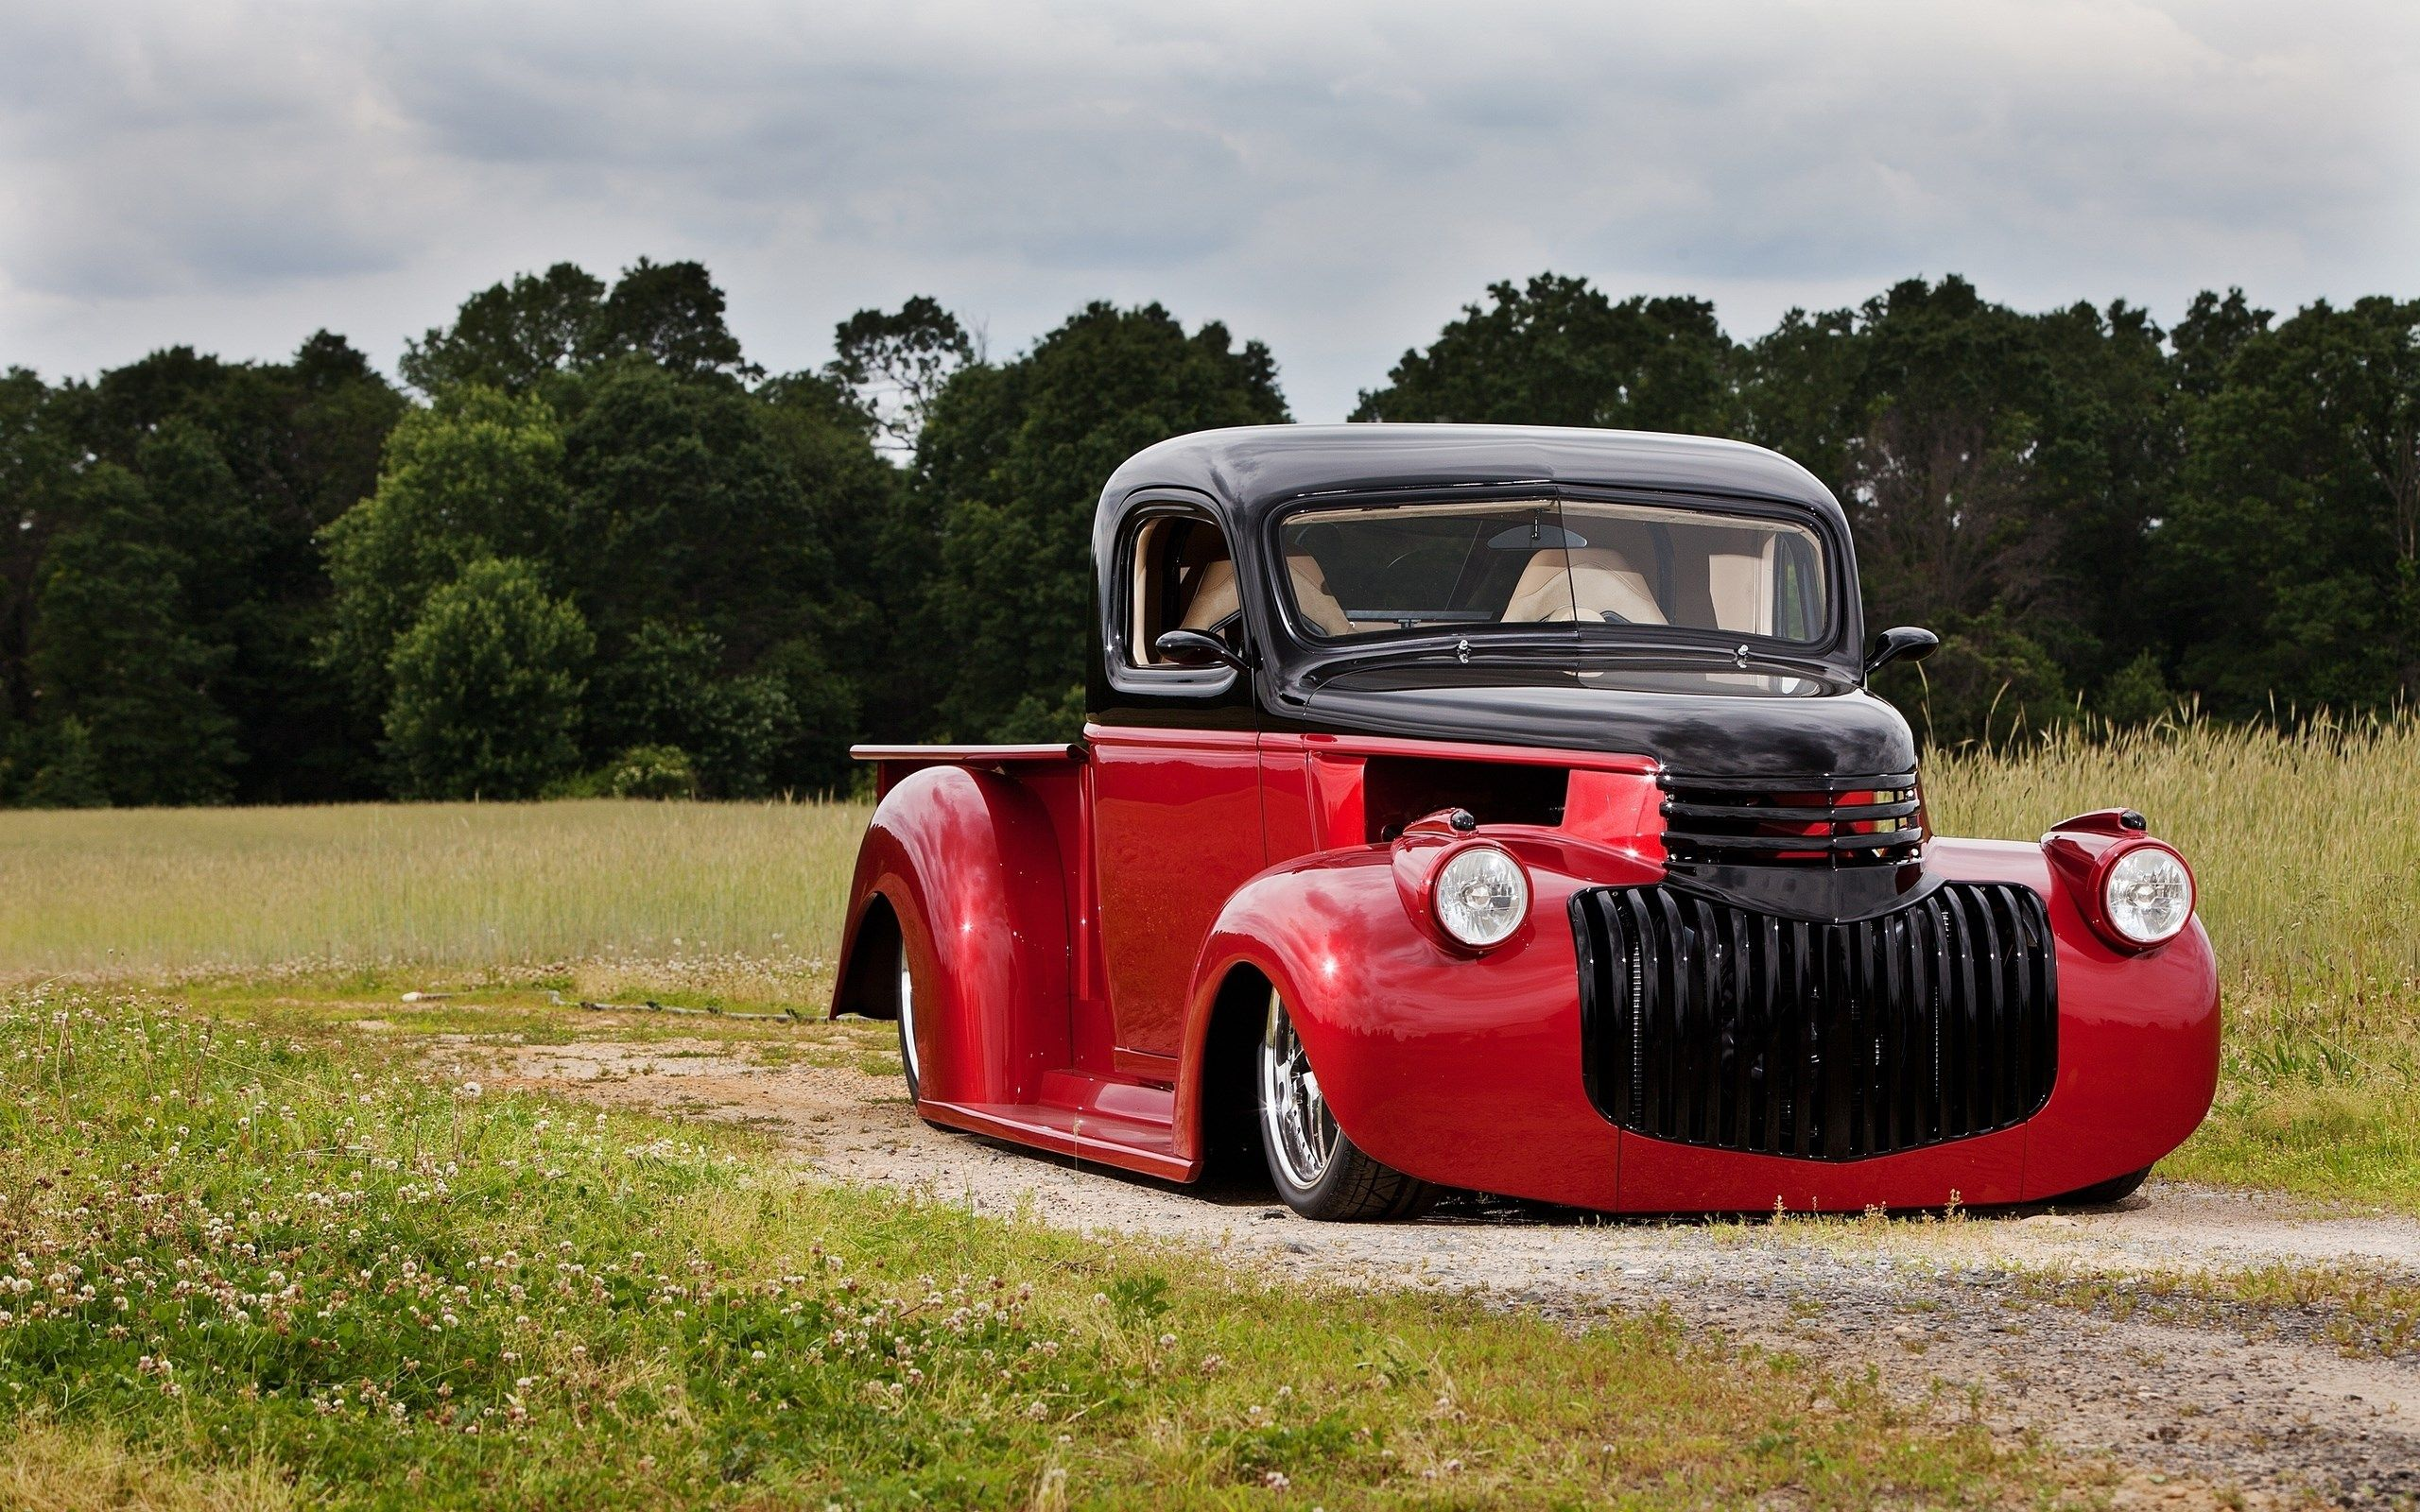 1661710, hot rod category - Best hot rod backround | gogolmogol ...